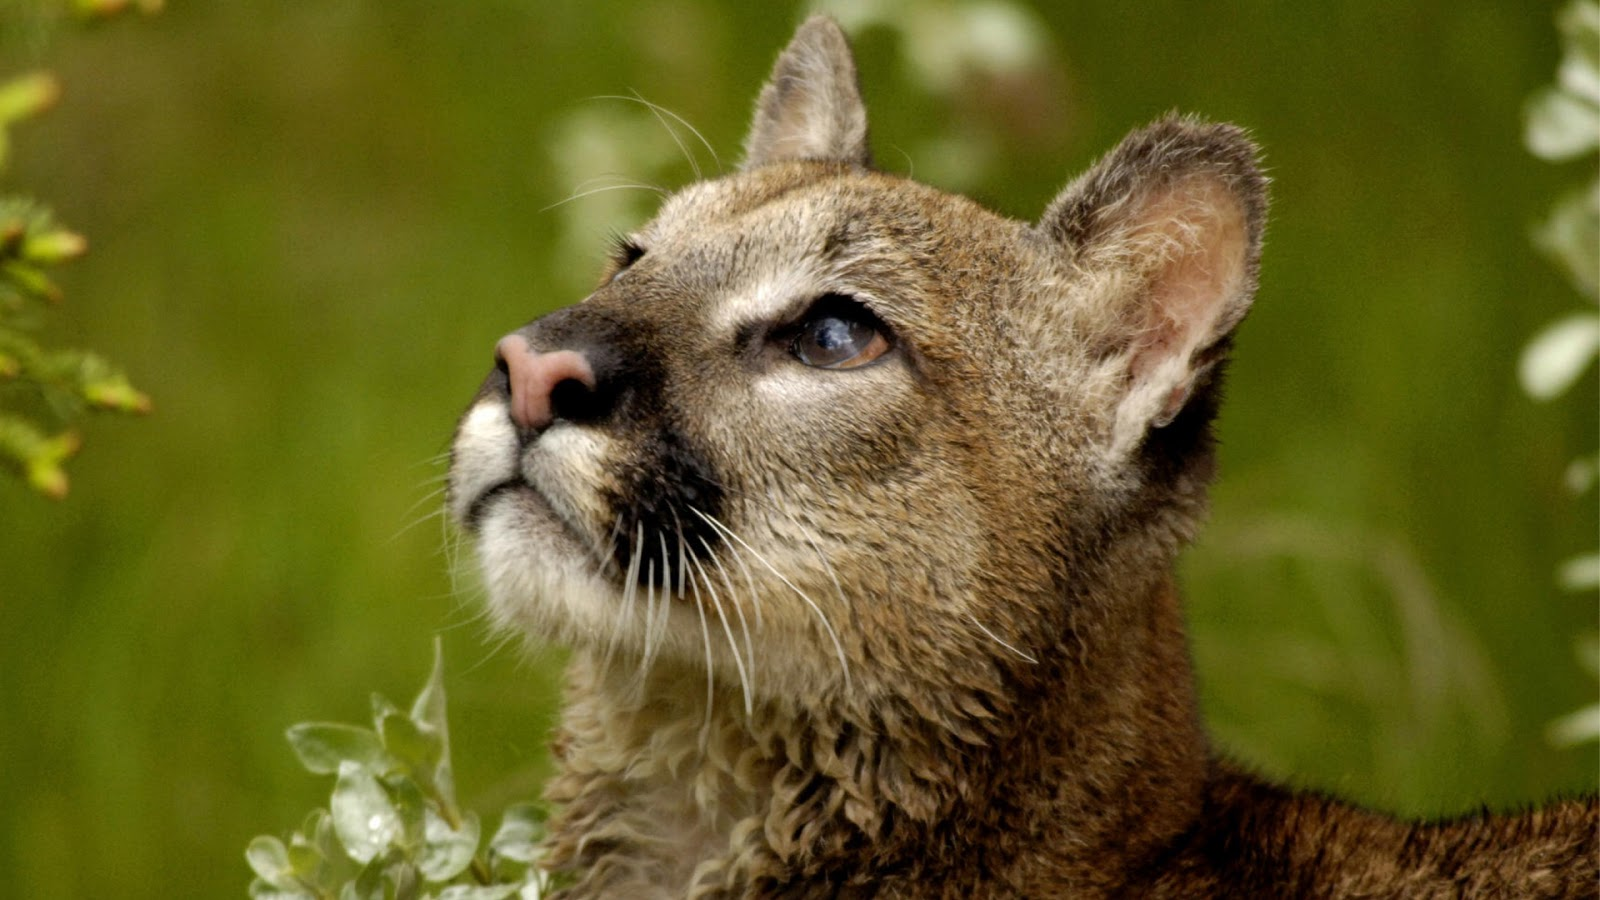 mountain lion cougar hd wallpapers hd wallpapers high